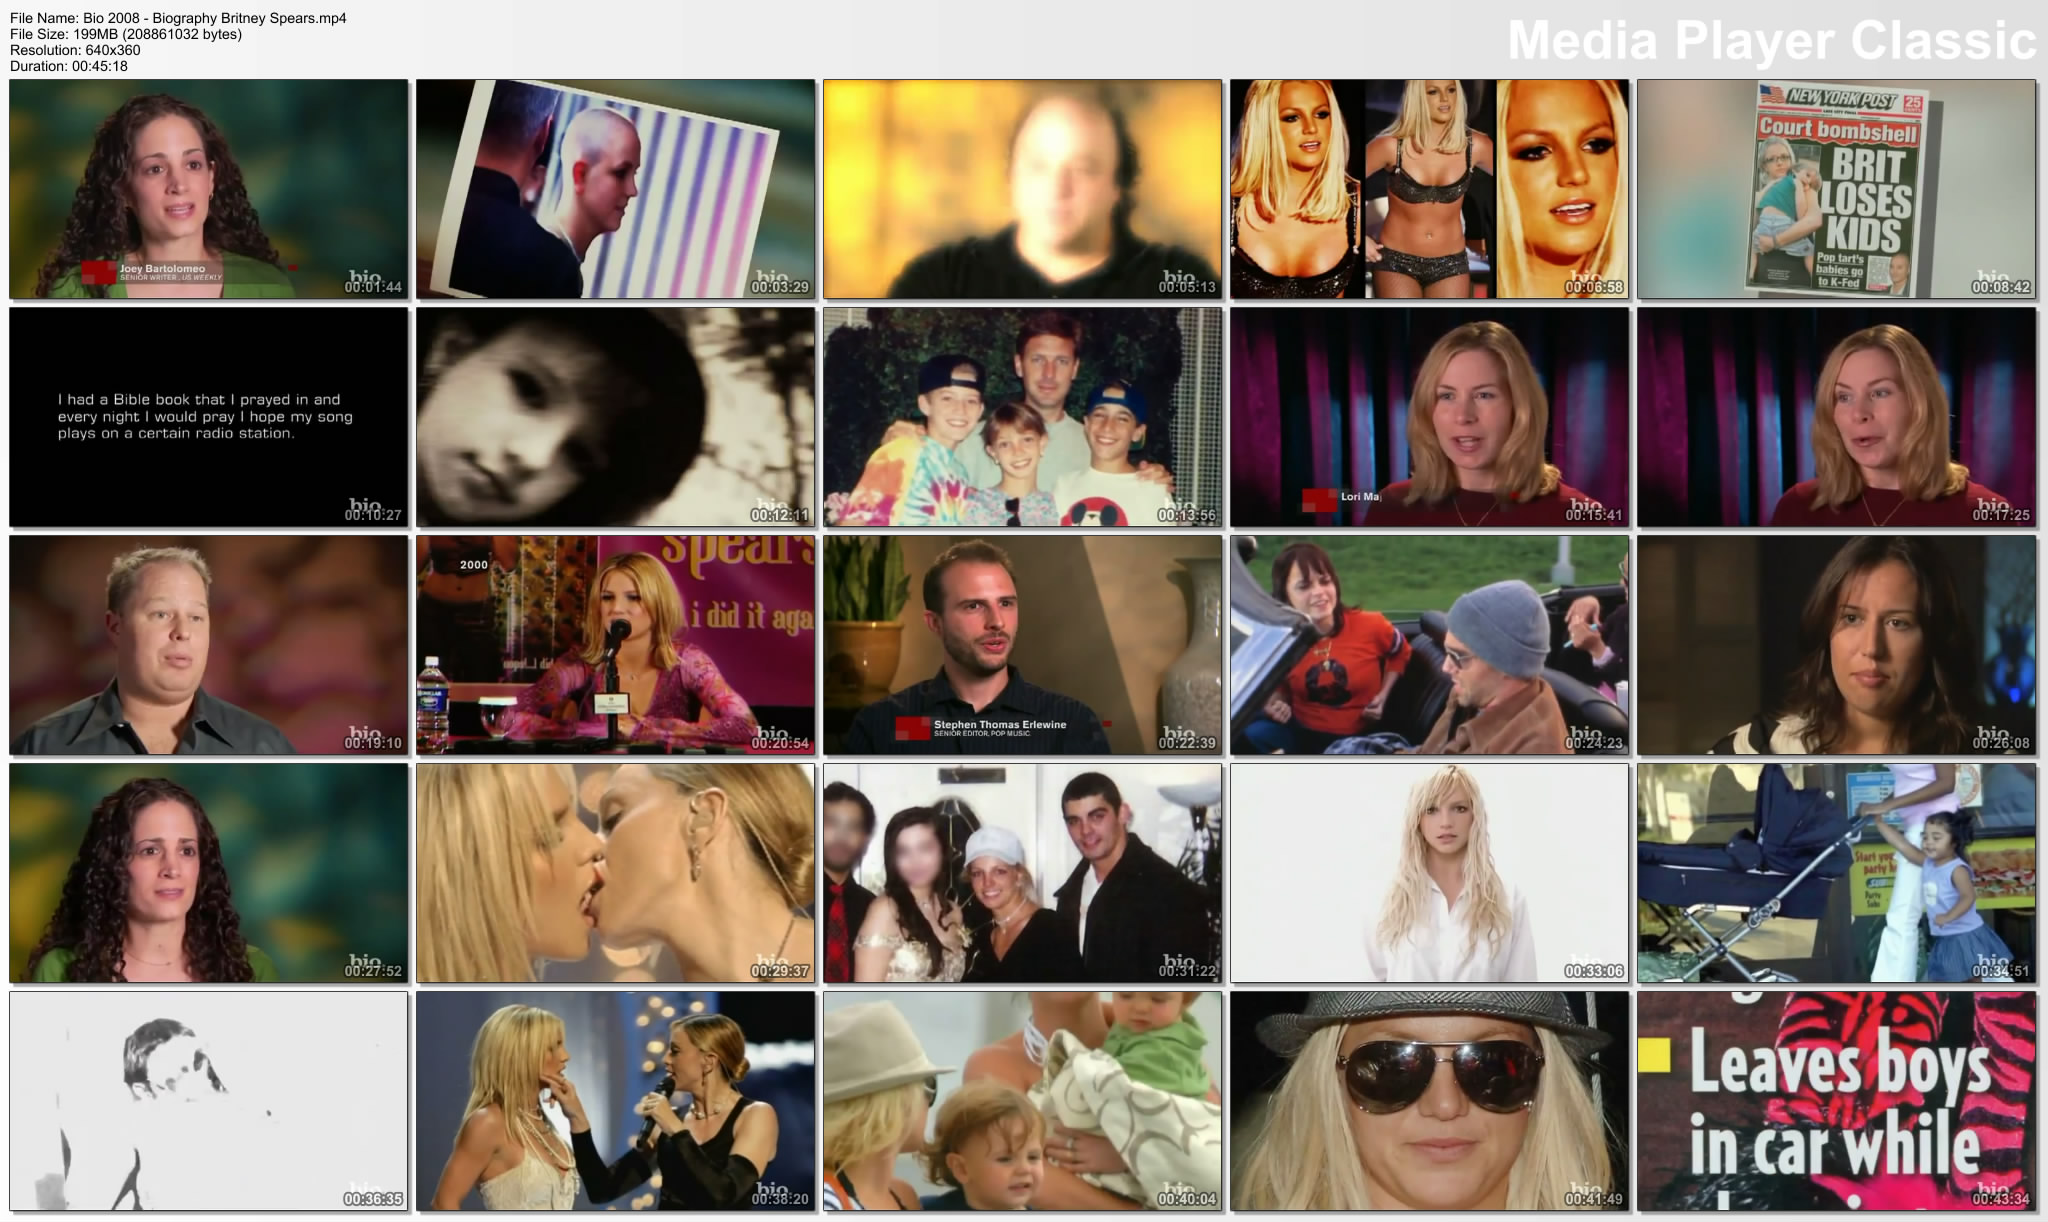 403709279_Bio2008_BiographyBritneySpears.mp4_thumbs_2012.03.10_20.18.02_122_541lo.jpg